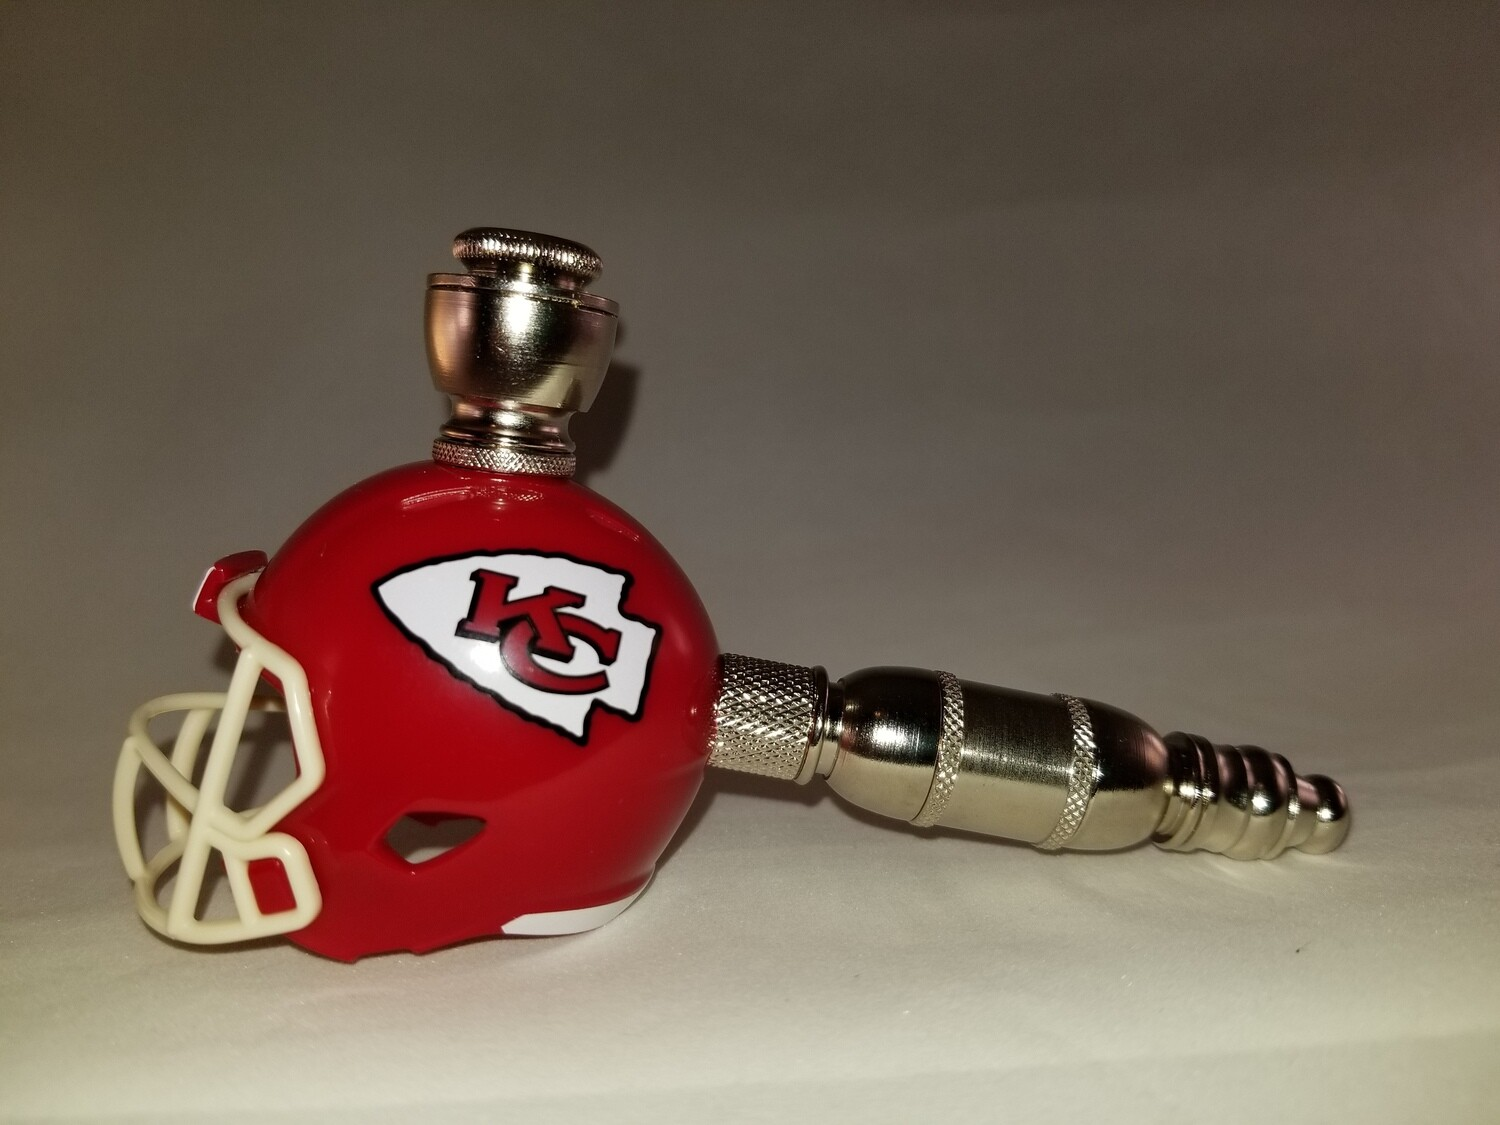 KANSAS CITY CHIEFS NFL FOOTBALL HELMET UPRIGHT SMOKING PIPE Straight/Nickel